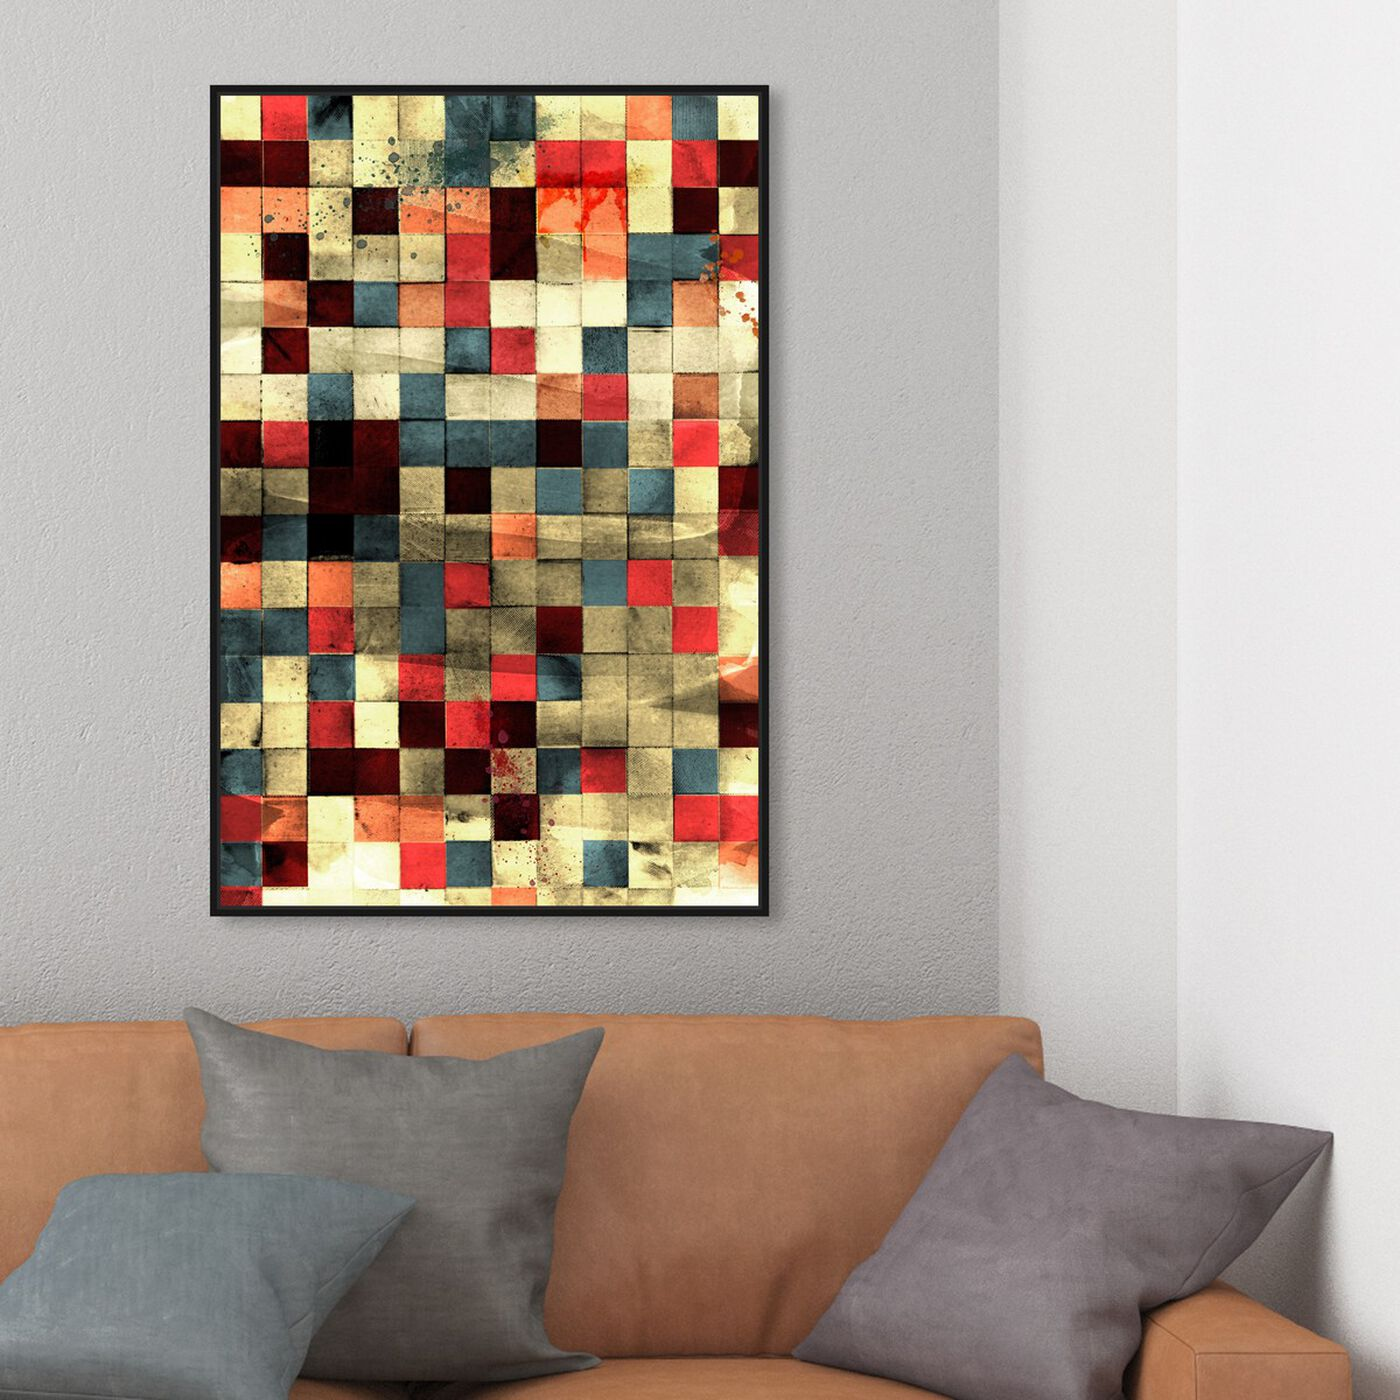 Hanging view of Mosaic featuring abstract and patterns art.